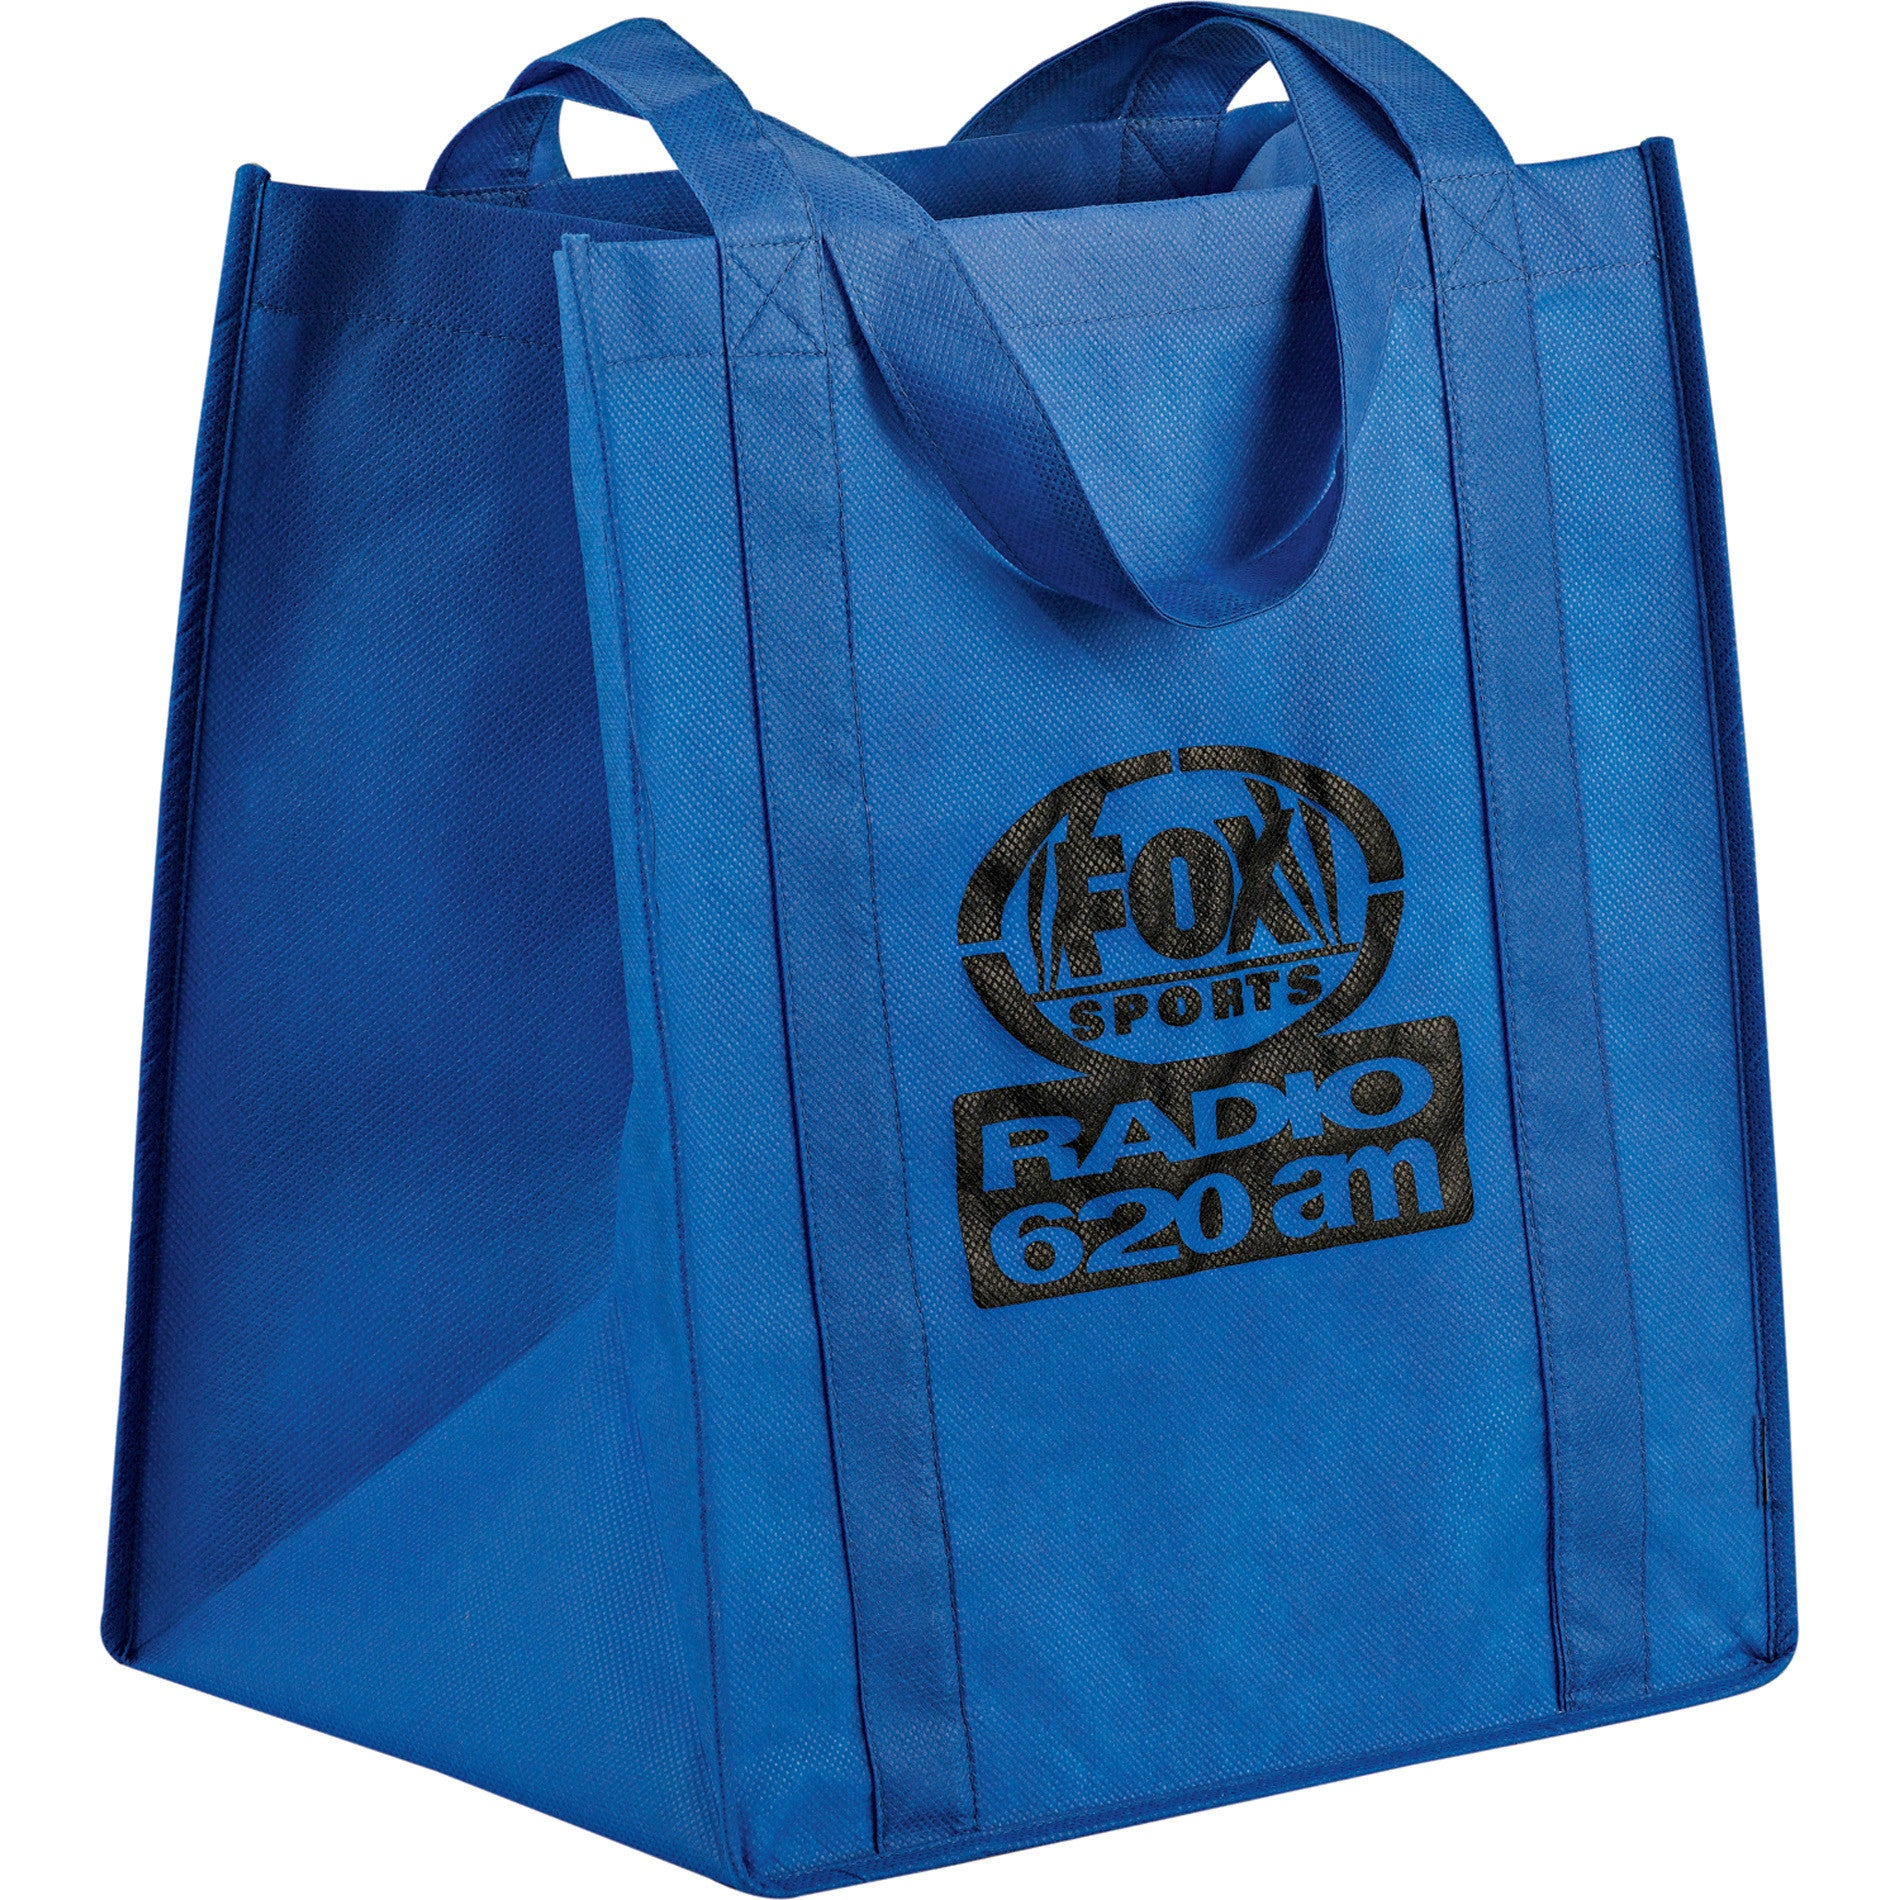 afe5570df7ae4 Environmentally Friendly Promotional Shopping Bags - PROMOrx